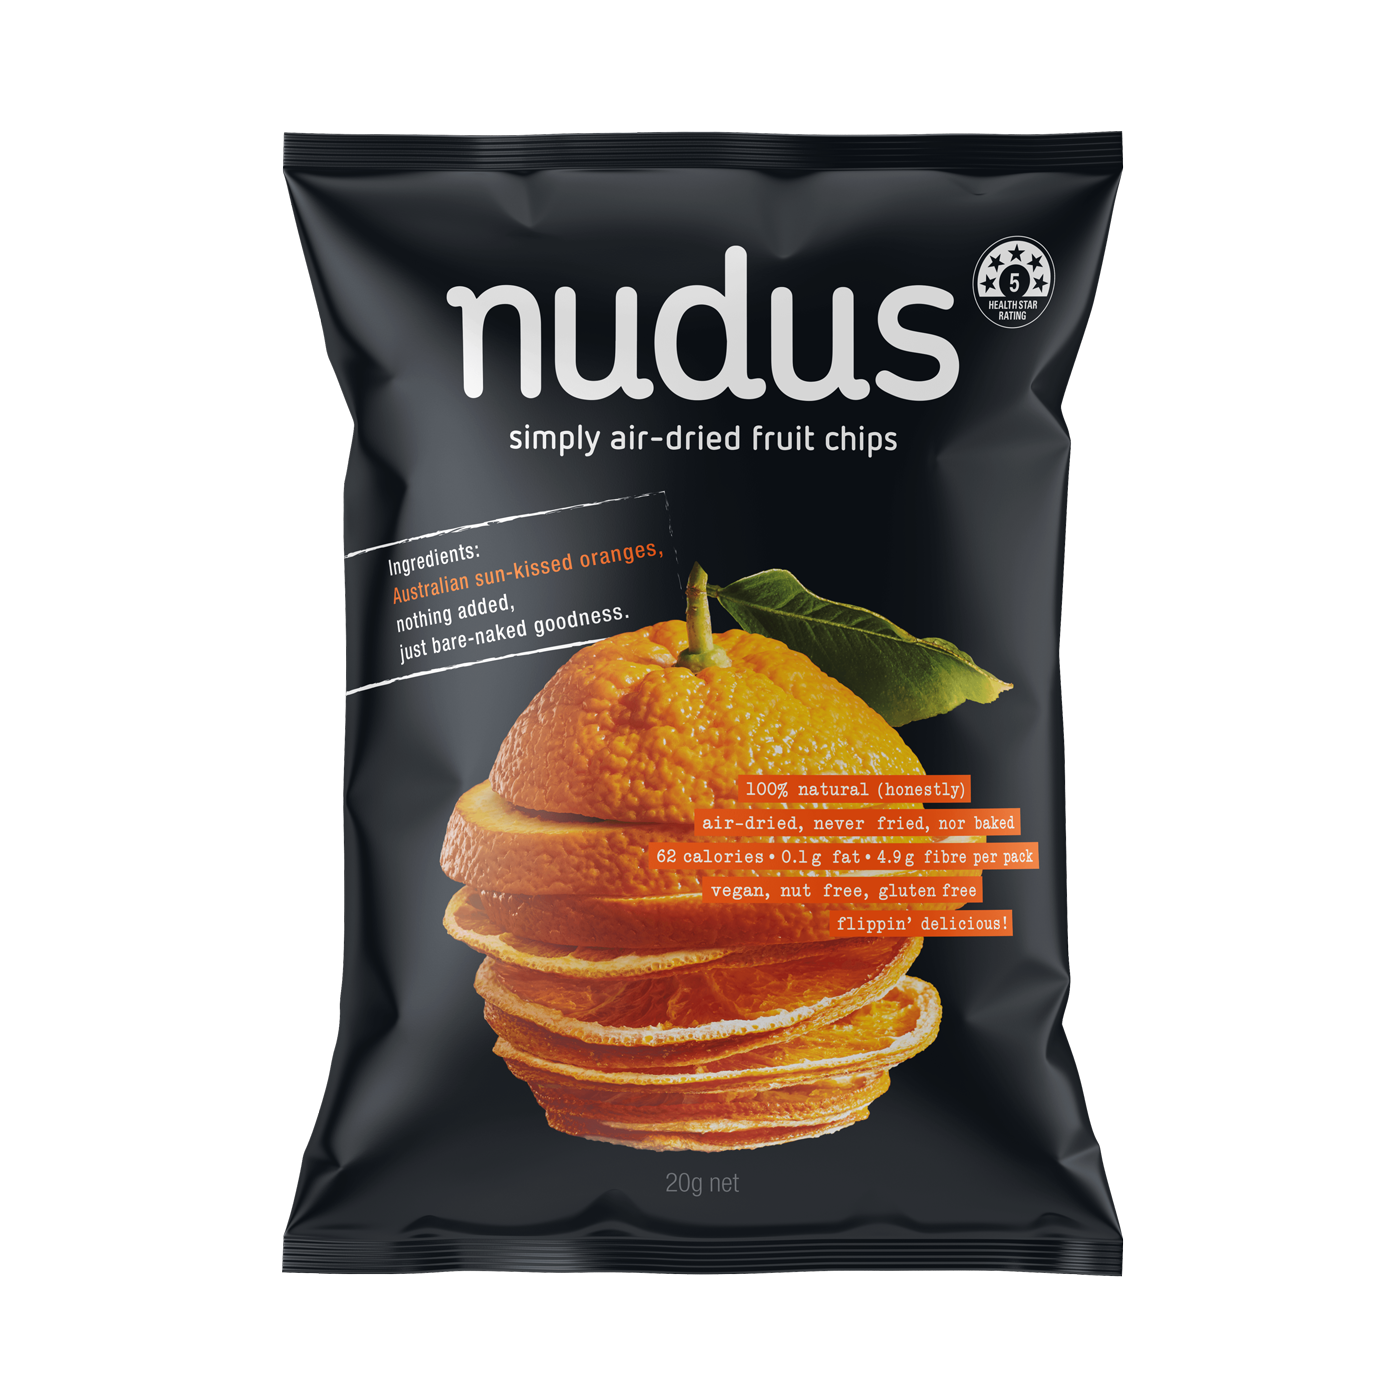 orange fruit chips - 12 bags ($2.75 / 20g bag)